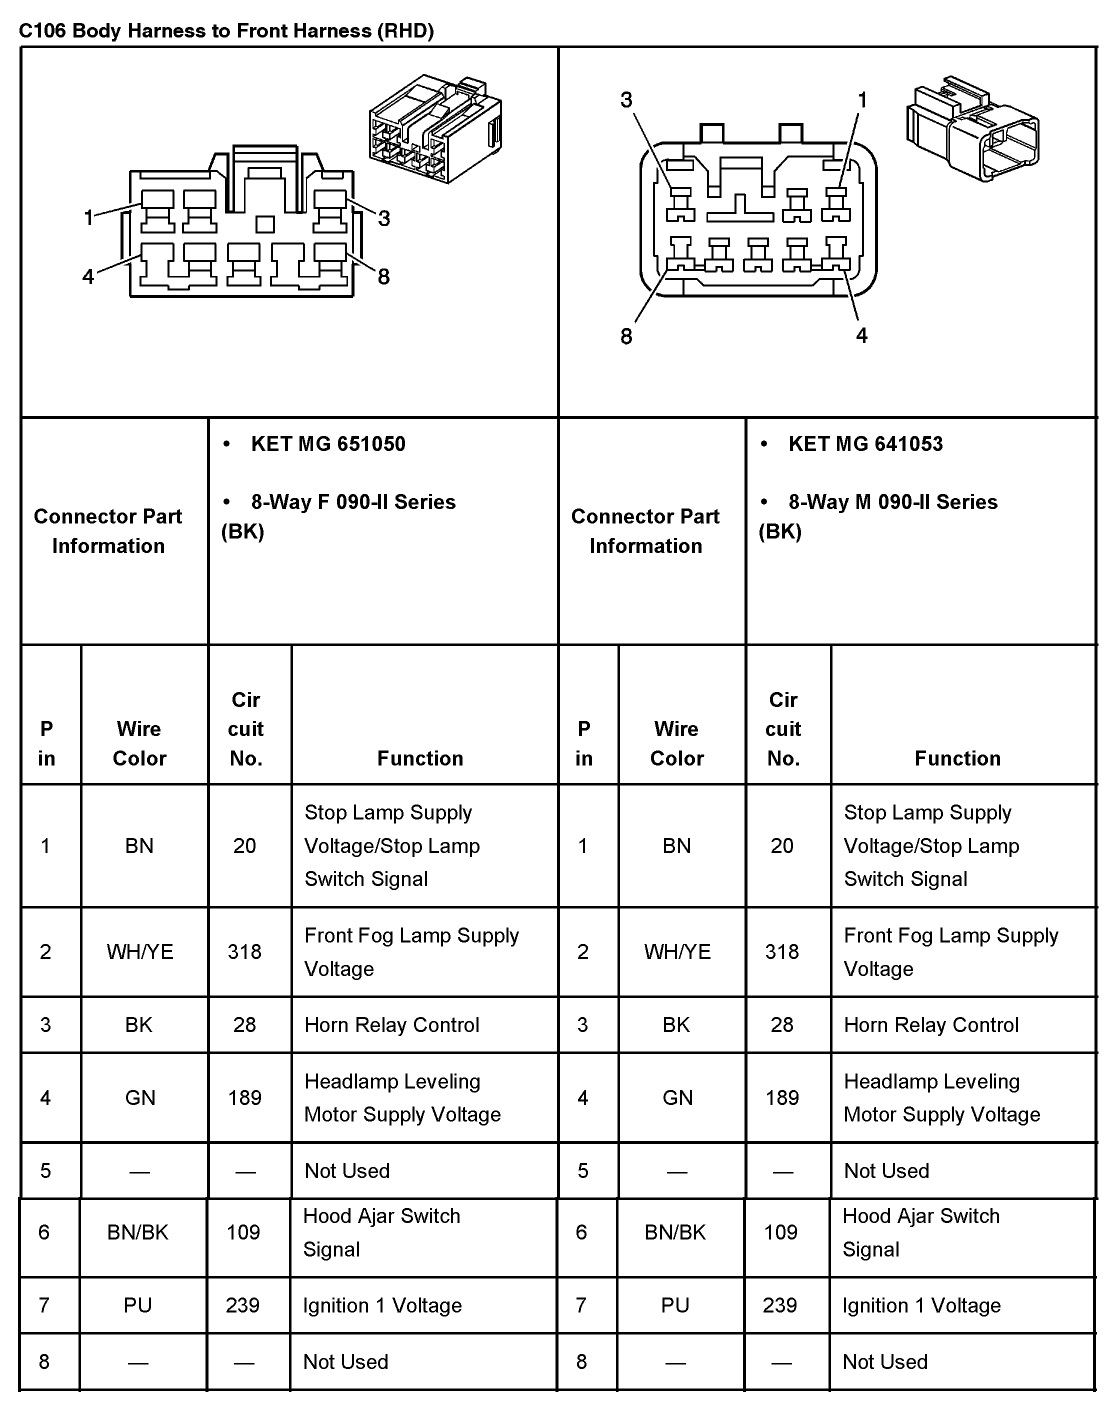 2005 chevy optra wiring diagram 2005 chevy tahoe wiring diagram 2005 aveo master connector list and diagrams